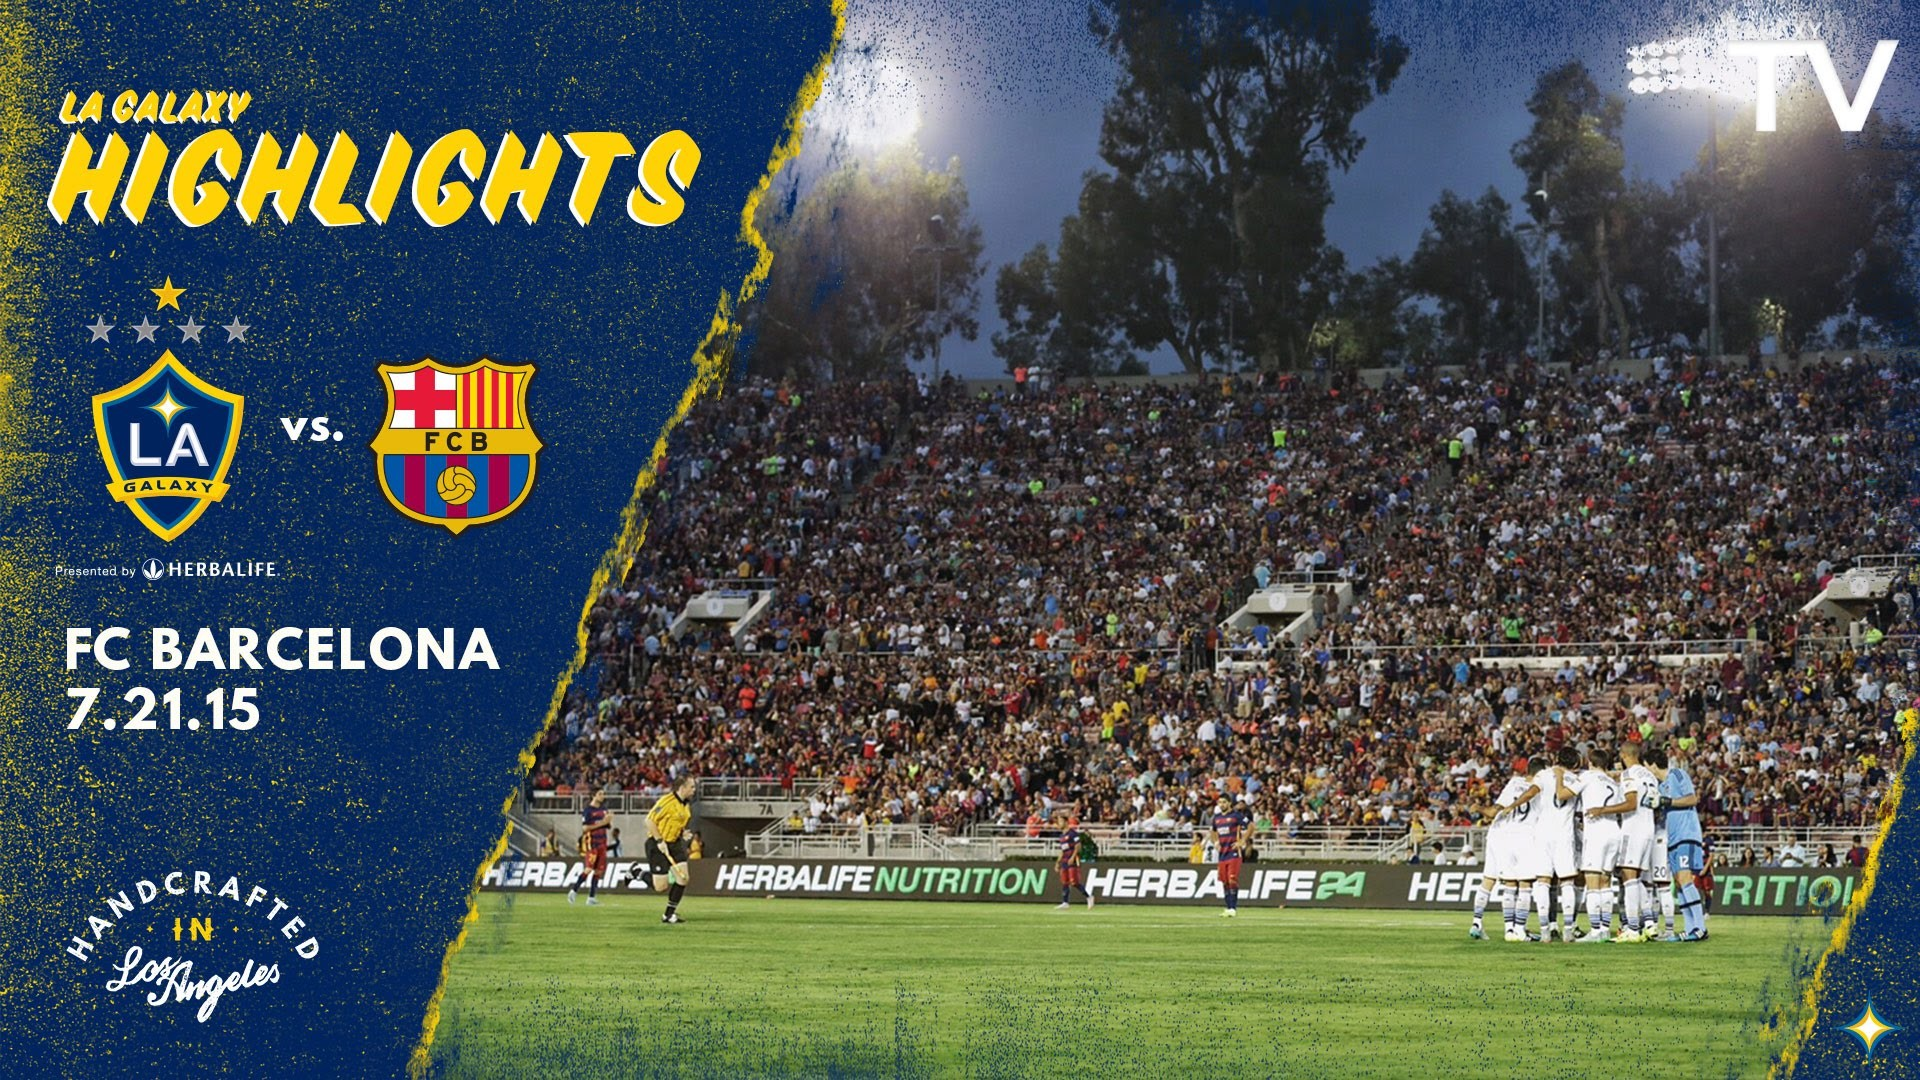 Res: 1920x1080, HIGHLIGHTS: LA Galaxy vs. FC Barcelona | July 21, 2015